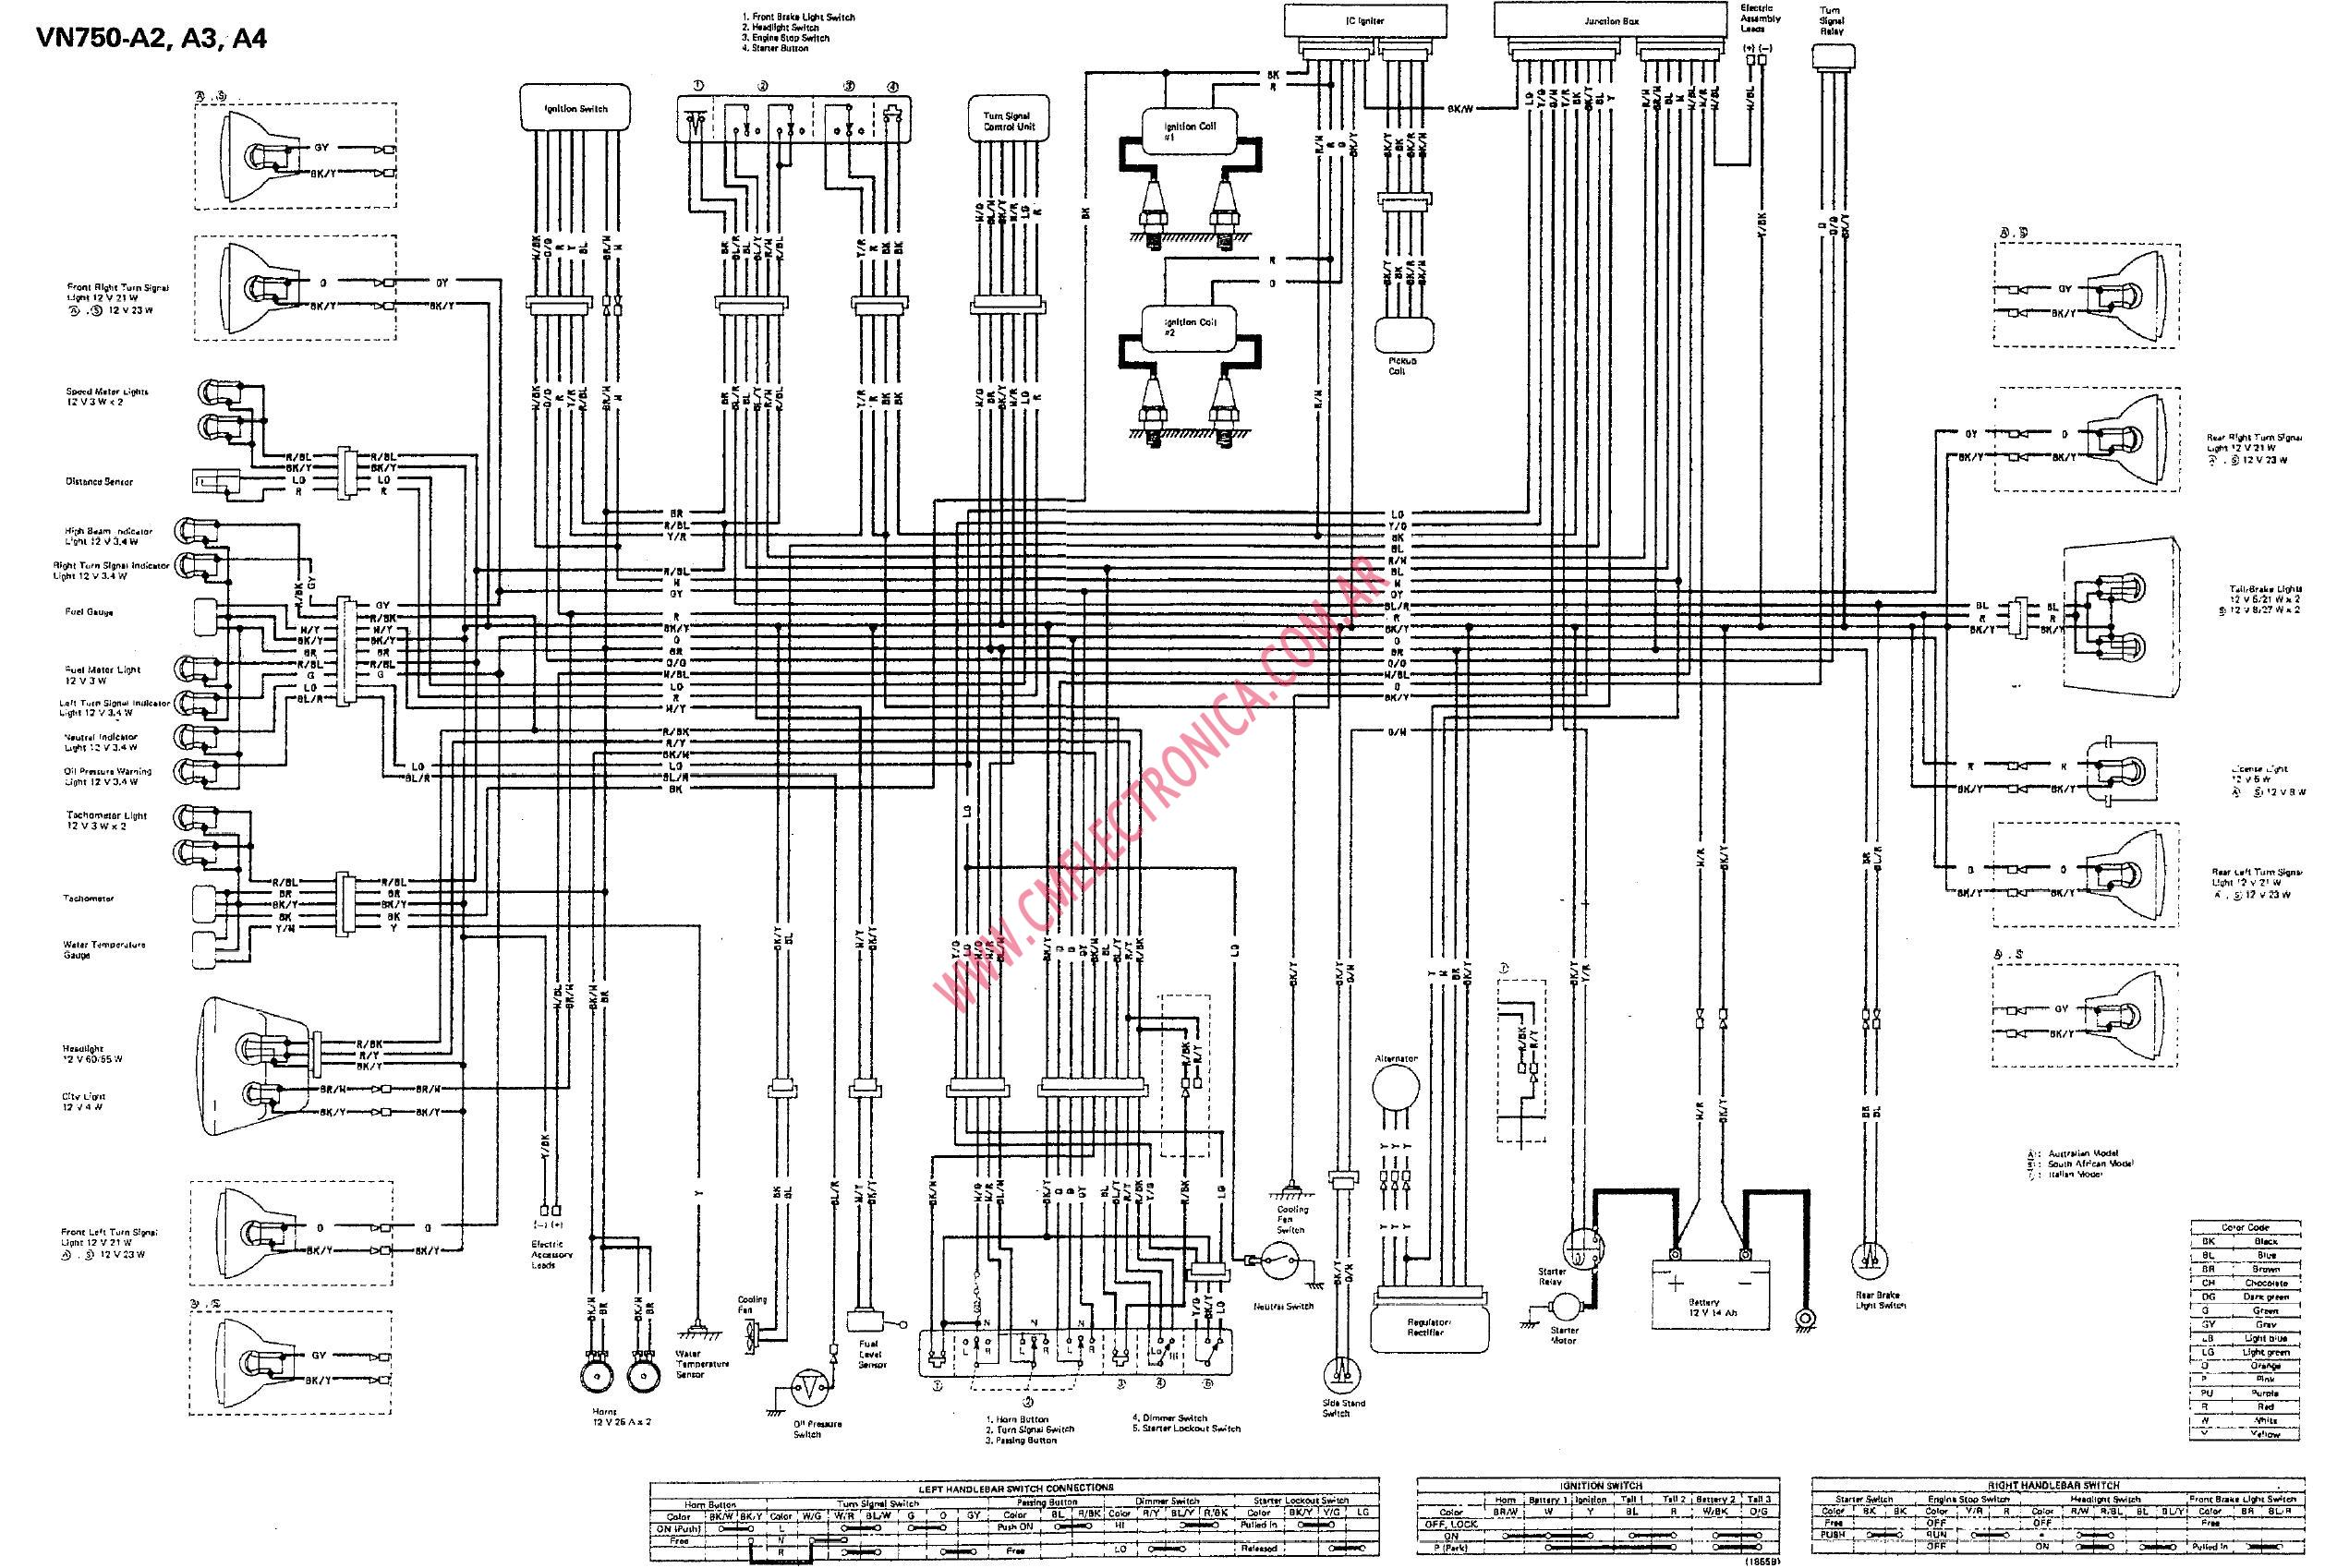 Diagram 2001 Kawasaki Vulcan 750 Wiring Diagram Full Version Hd Quality Wiring Diagram Diagrammyero Geexy Fr